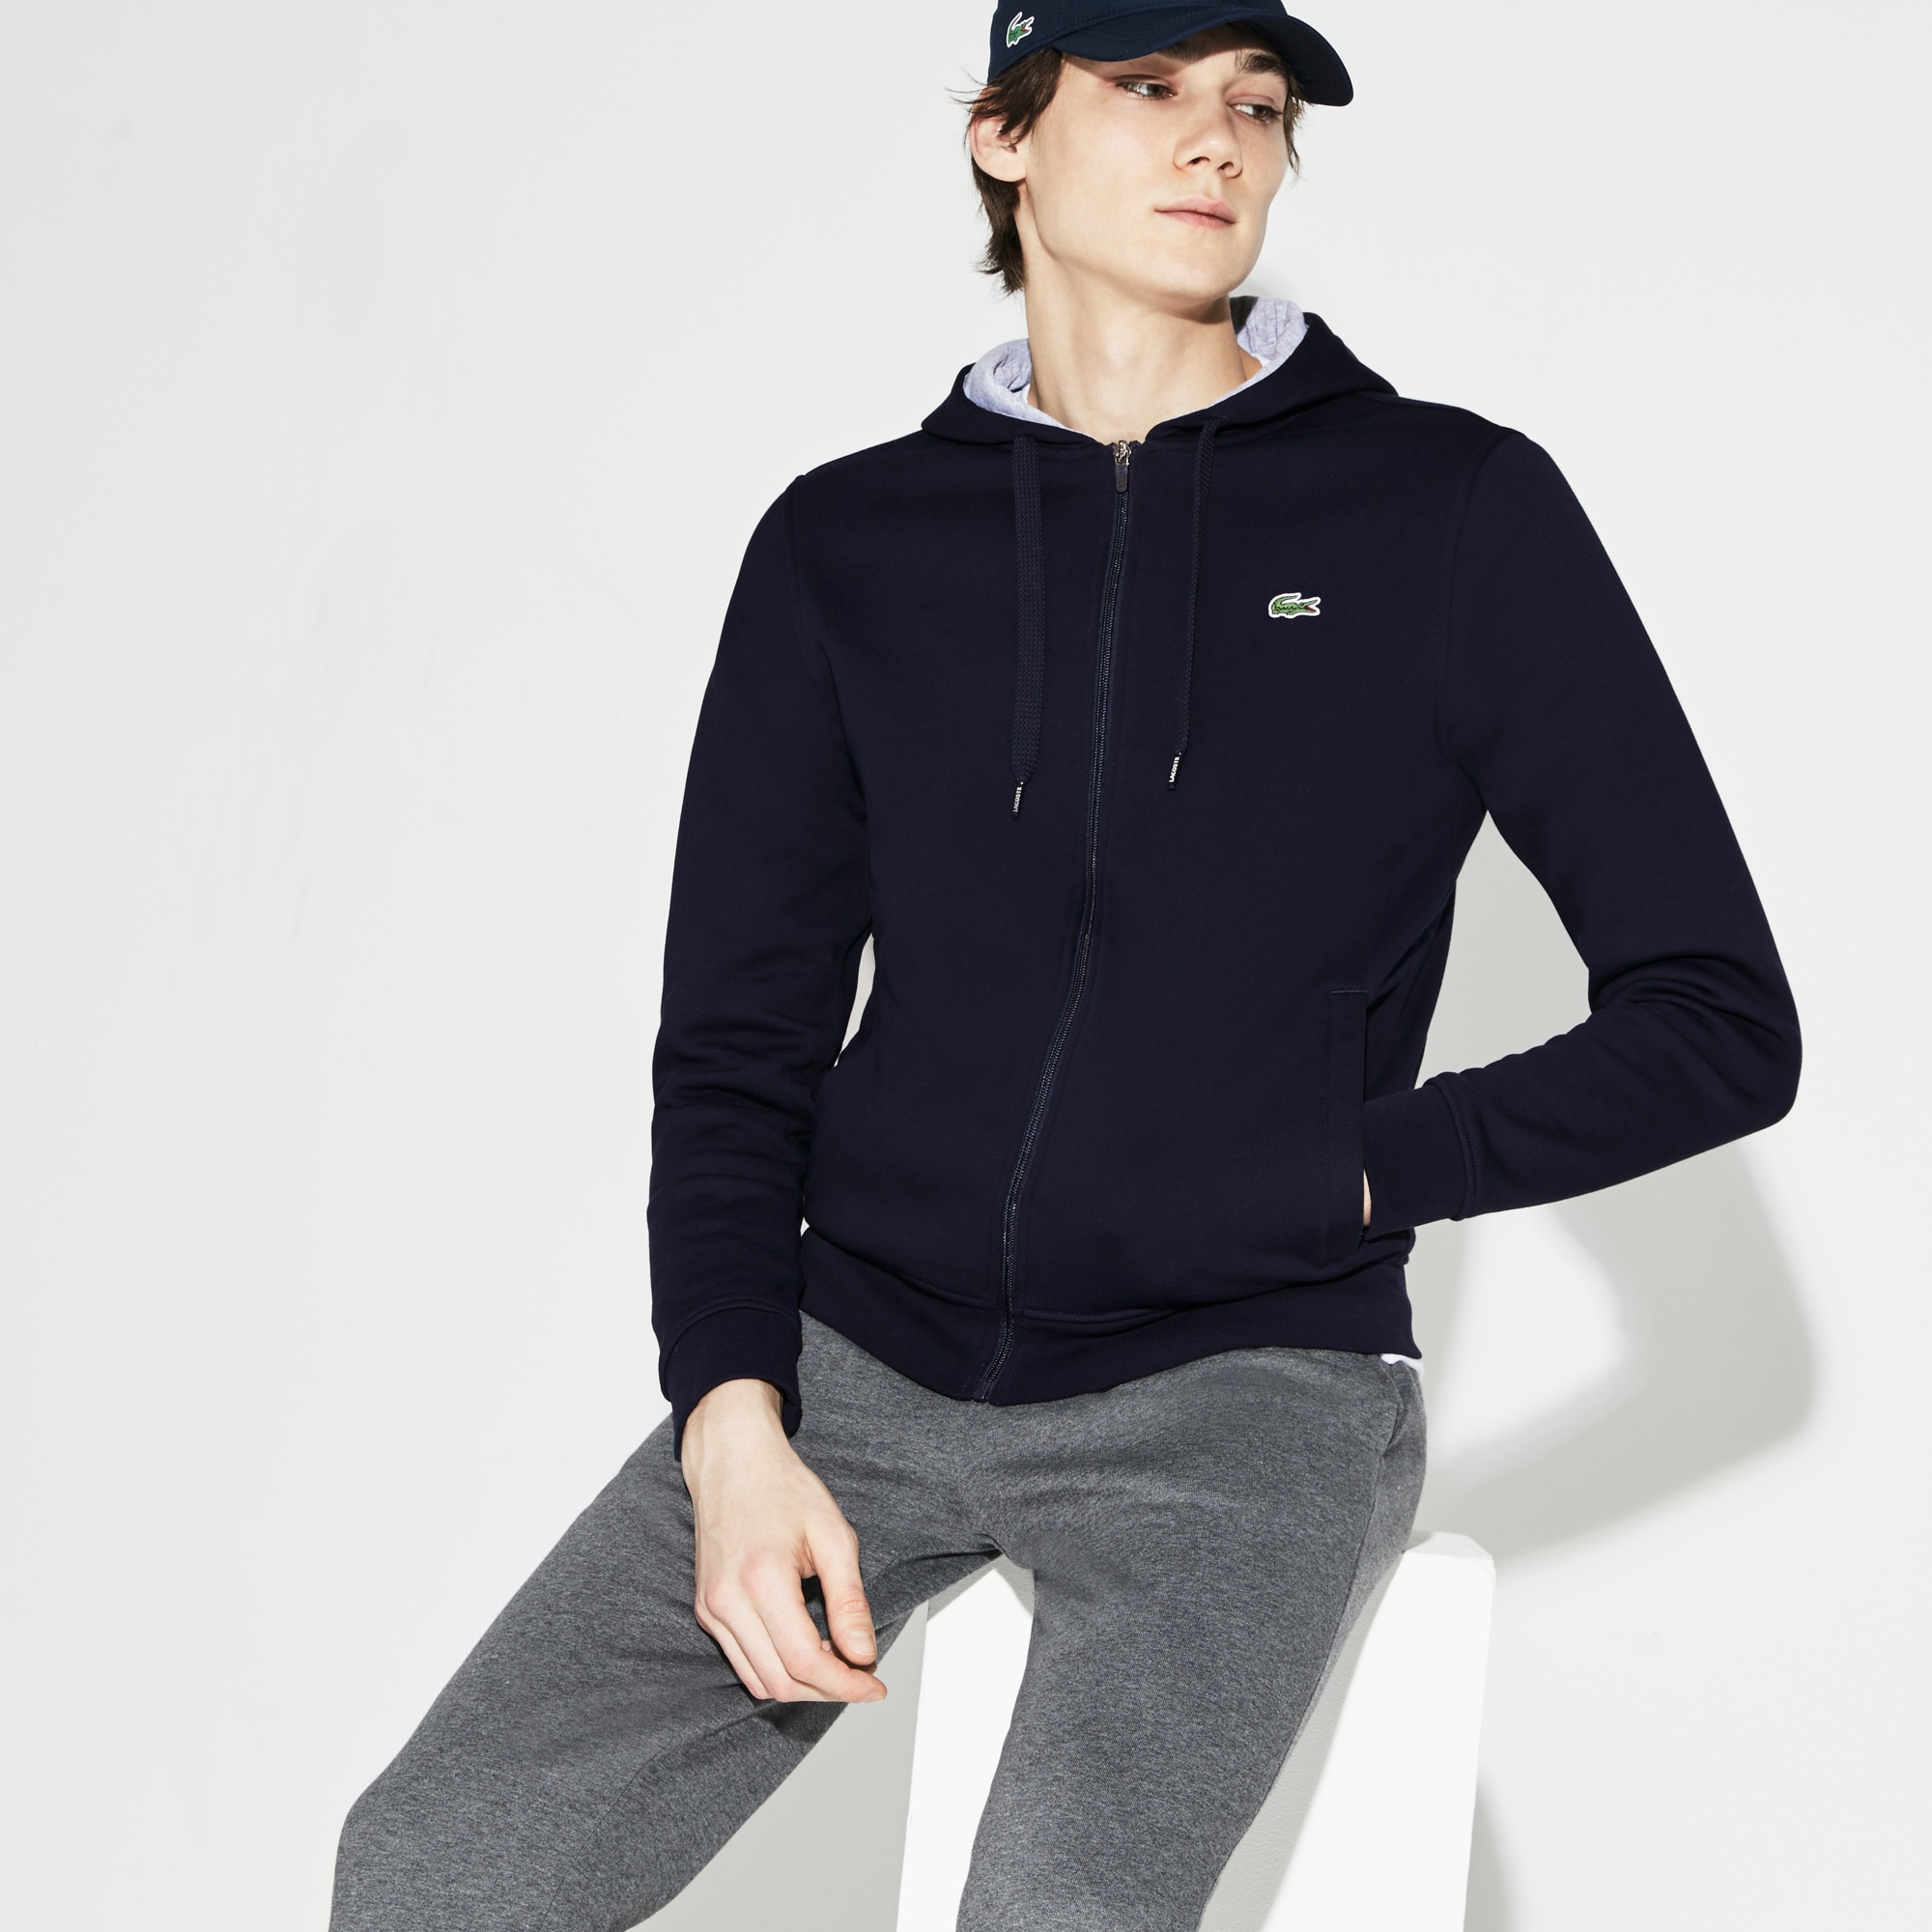 Men's SPORT Tennis hooded zippered sweatshirt in fleece